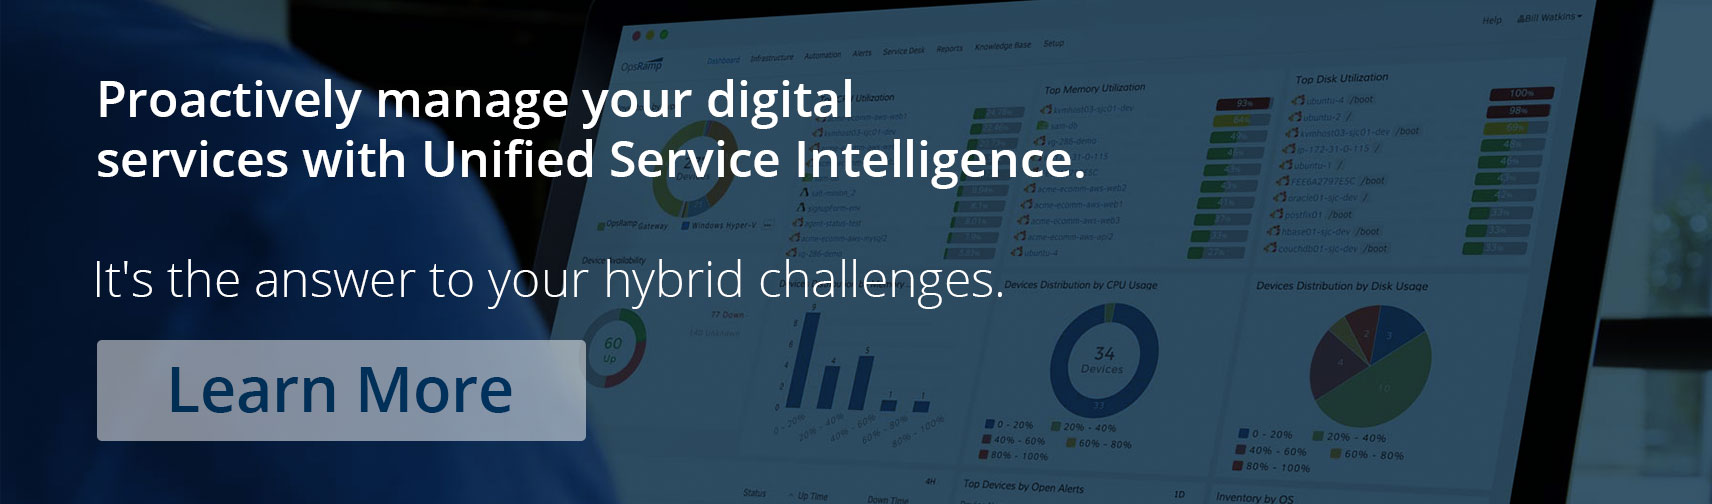 Unified Service Intelligence: The Answer To Your Hybrid Challenges